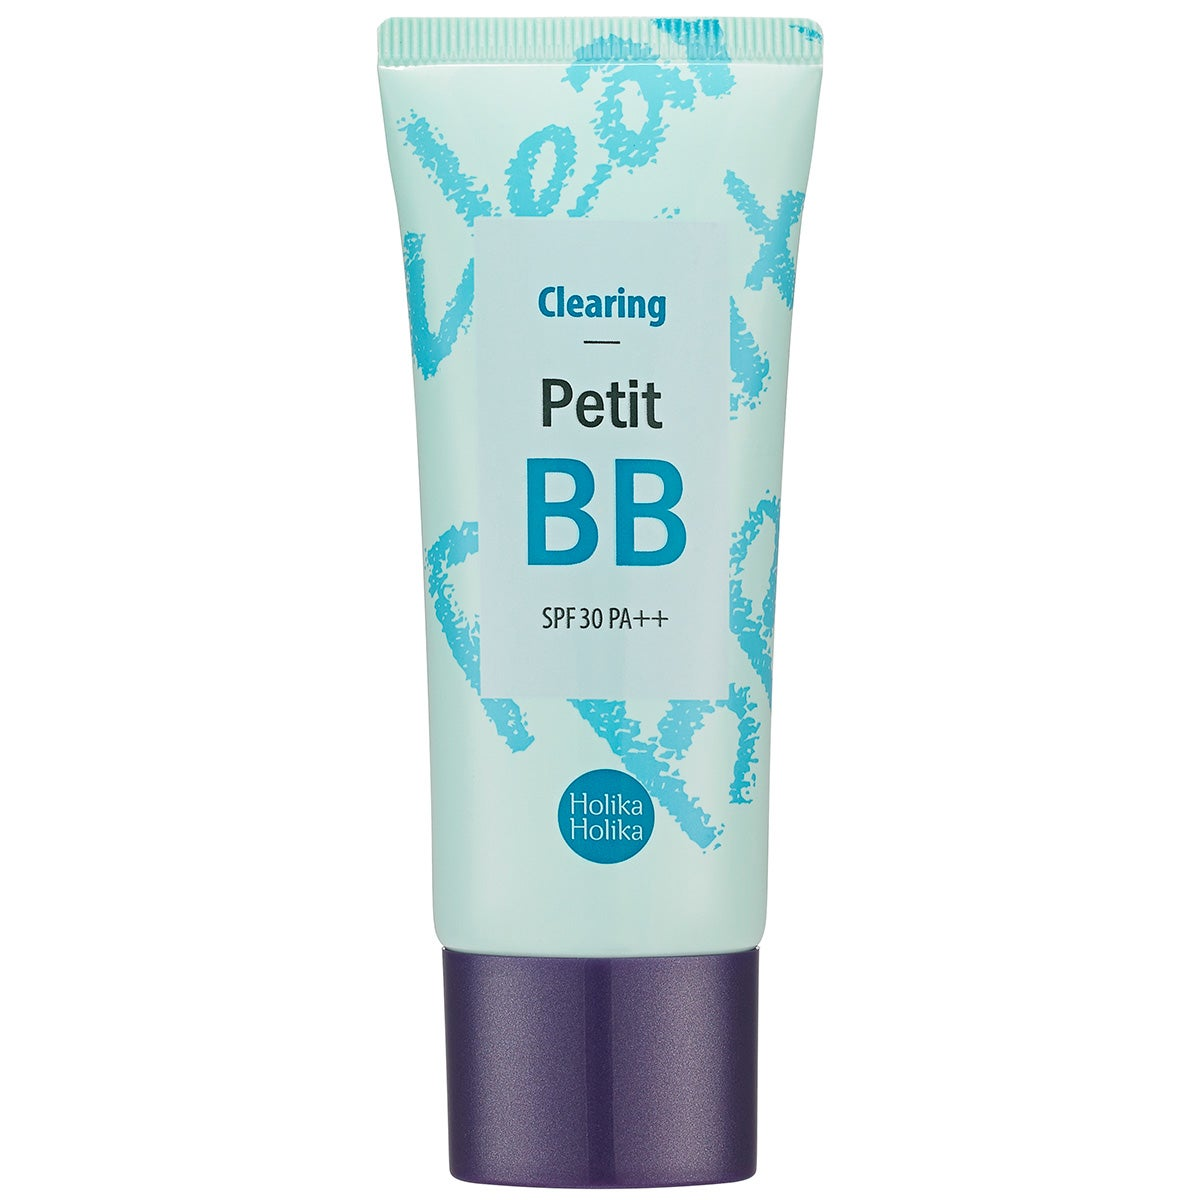 Clearing Petit BB Cream, 30 ml Holika Holika Dagkräm